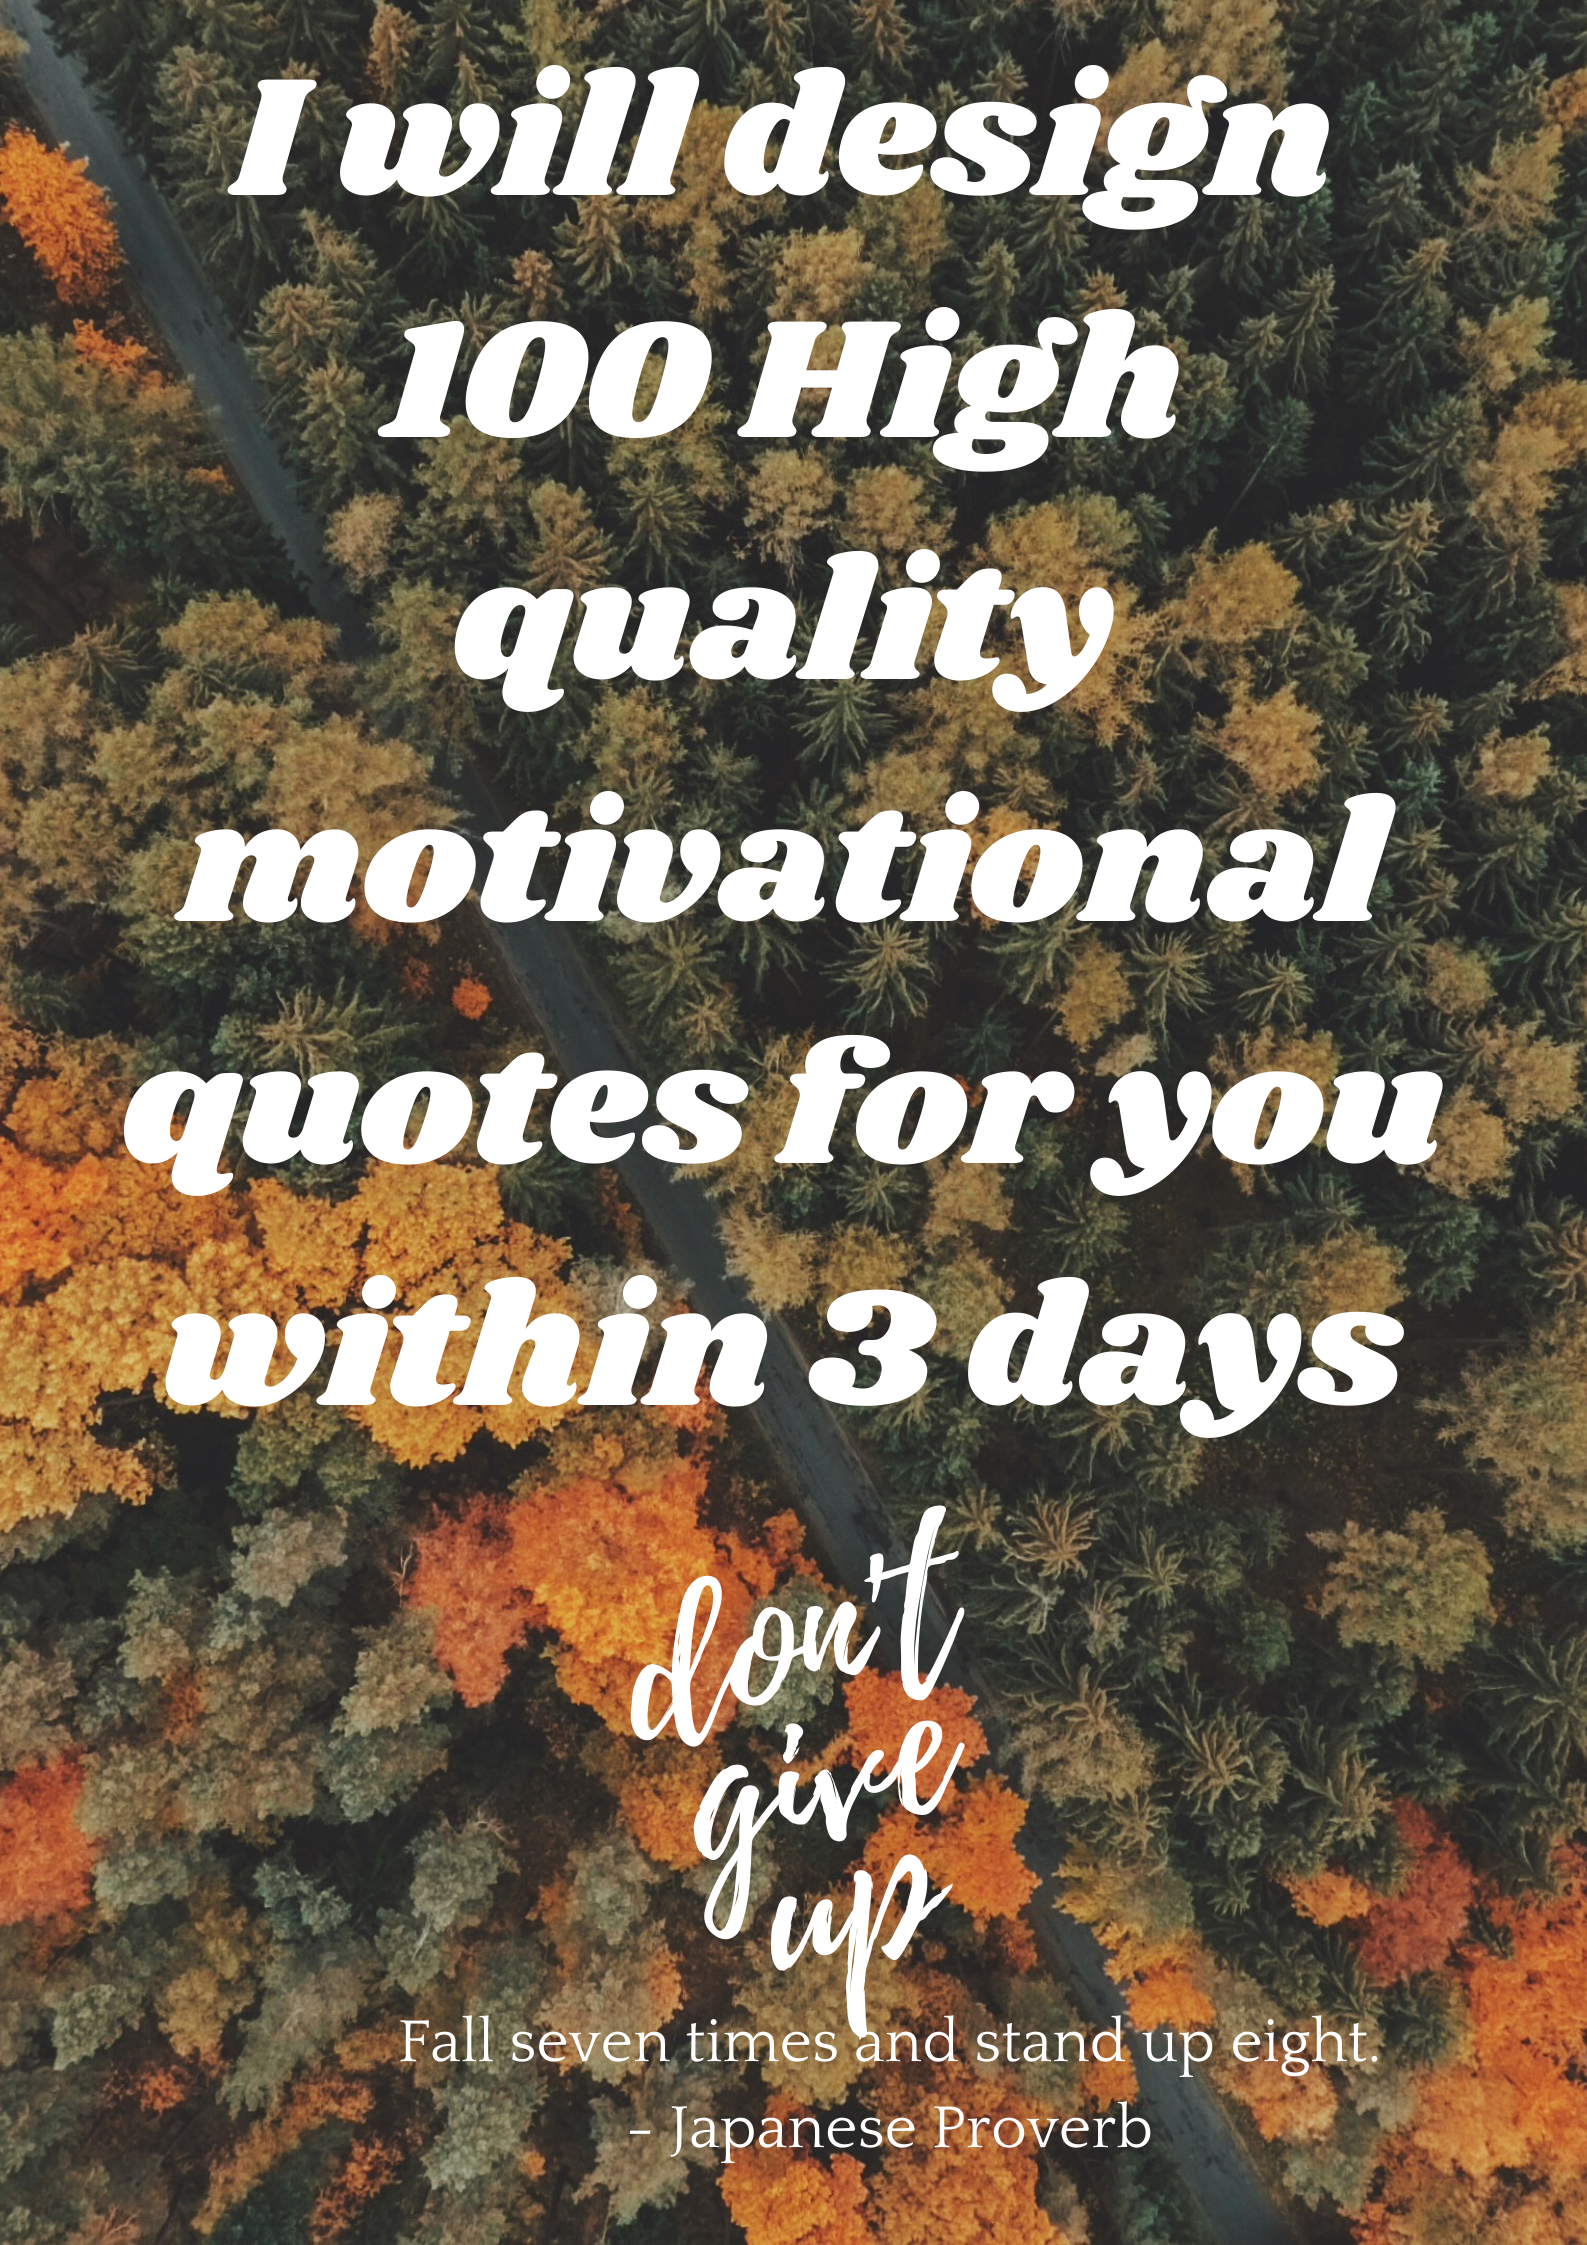 I will design quality motivational quotes designs for you